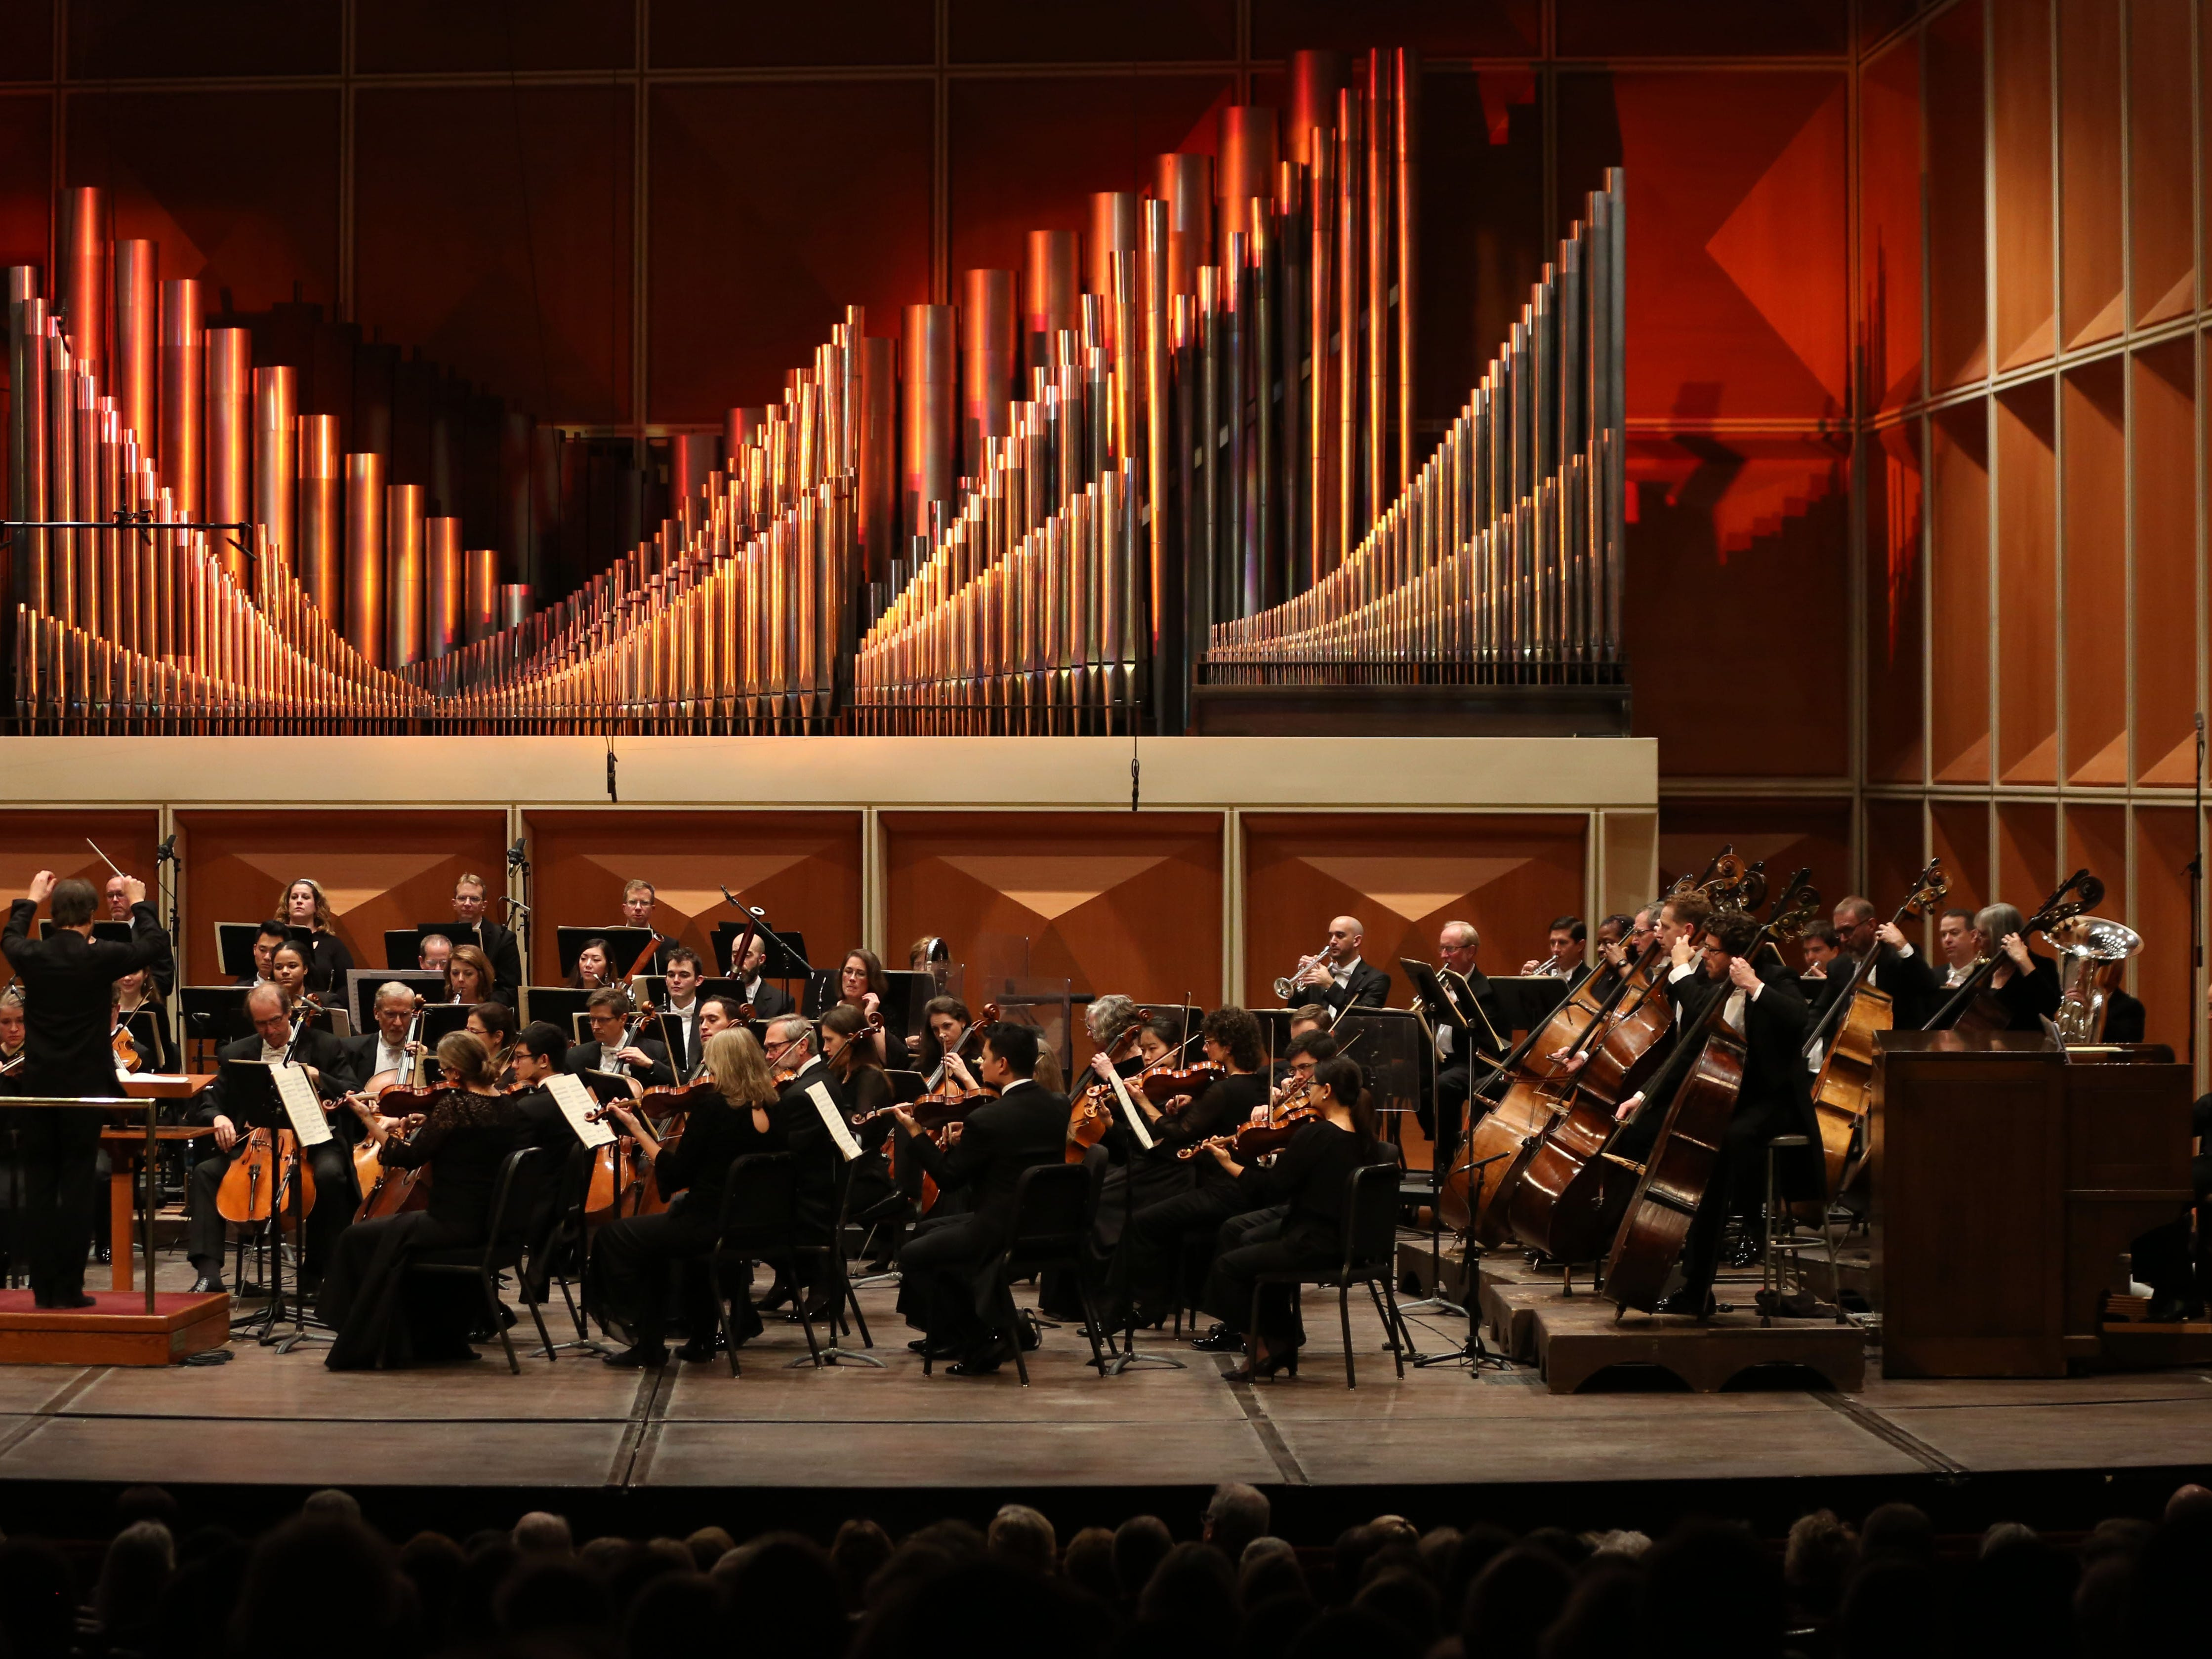 Conductor Johannes Debus leads the Milwaukee Symphony and organist David Jonies (far right) in Camille Saint-Saens' Symphony No 3 in C minor Saturday night at the Marcus Center.